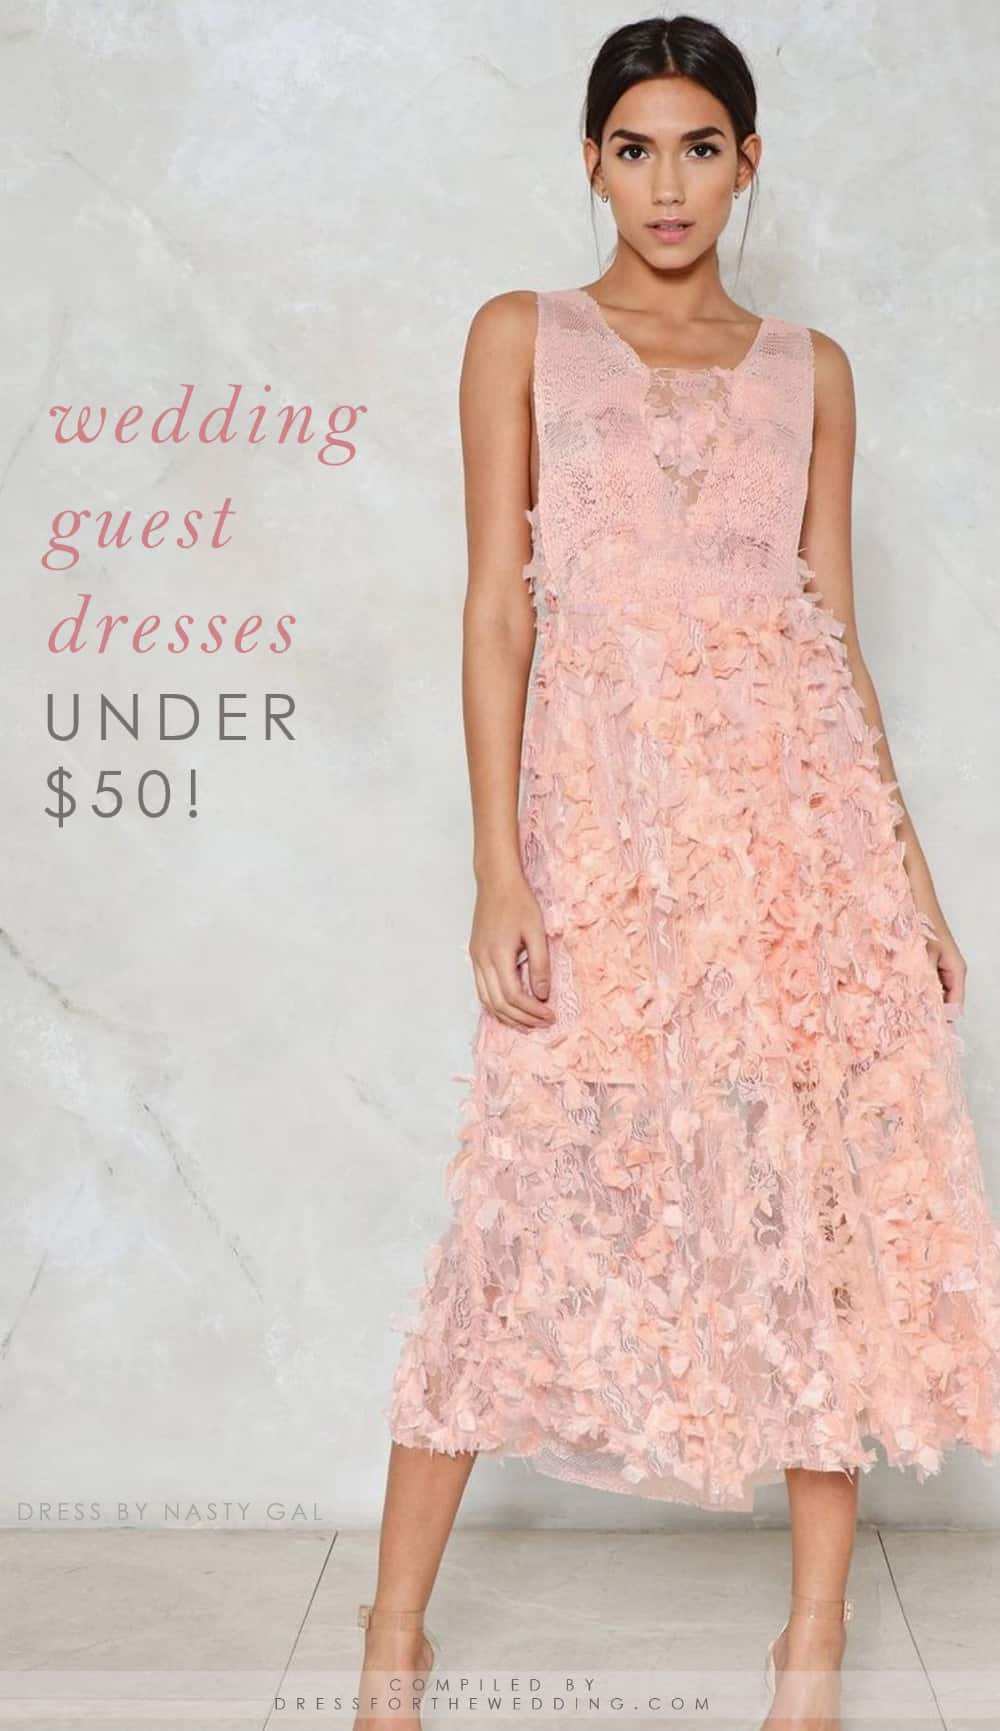 Wedding Guest Dresses Under $50 | Dress for the Wedding